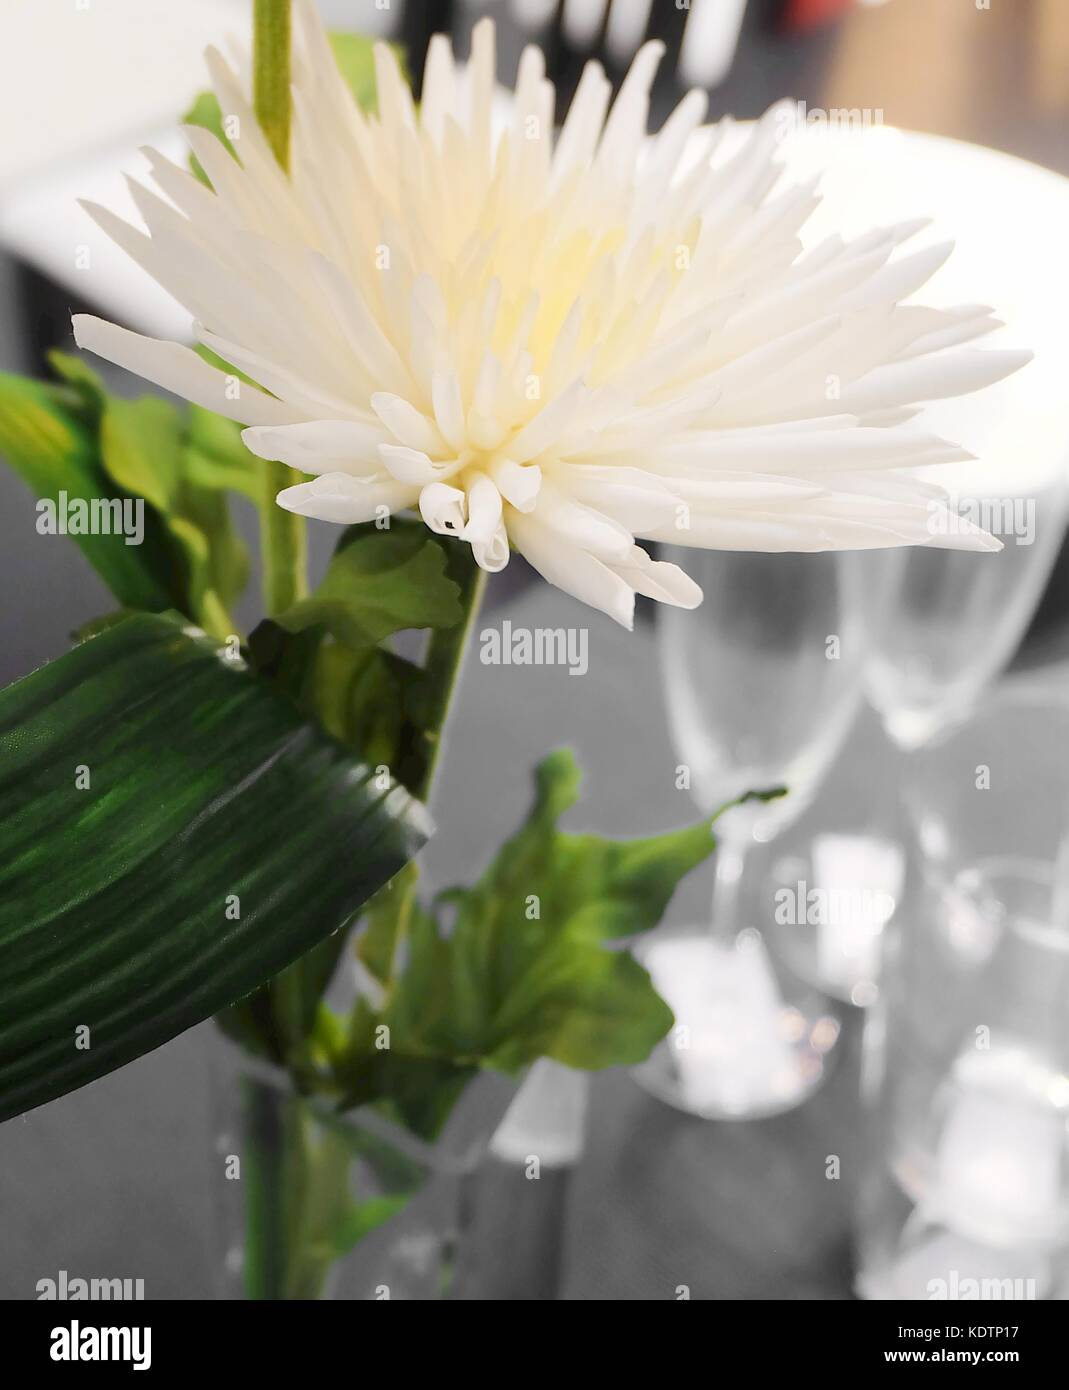 Small white chrysanthemum stock photos small white chrysanthemum pretty white artificial chrysanthemum flowers with green leaves for home and office decoration without the care mightylinksfo